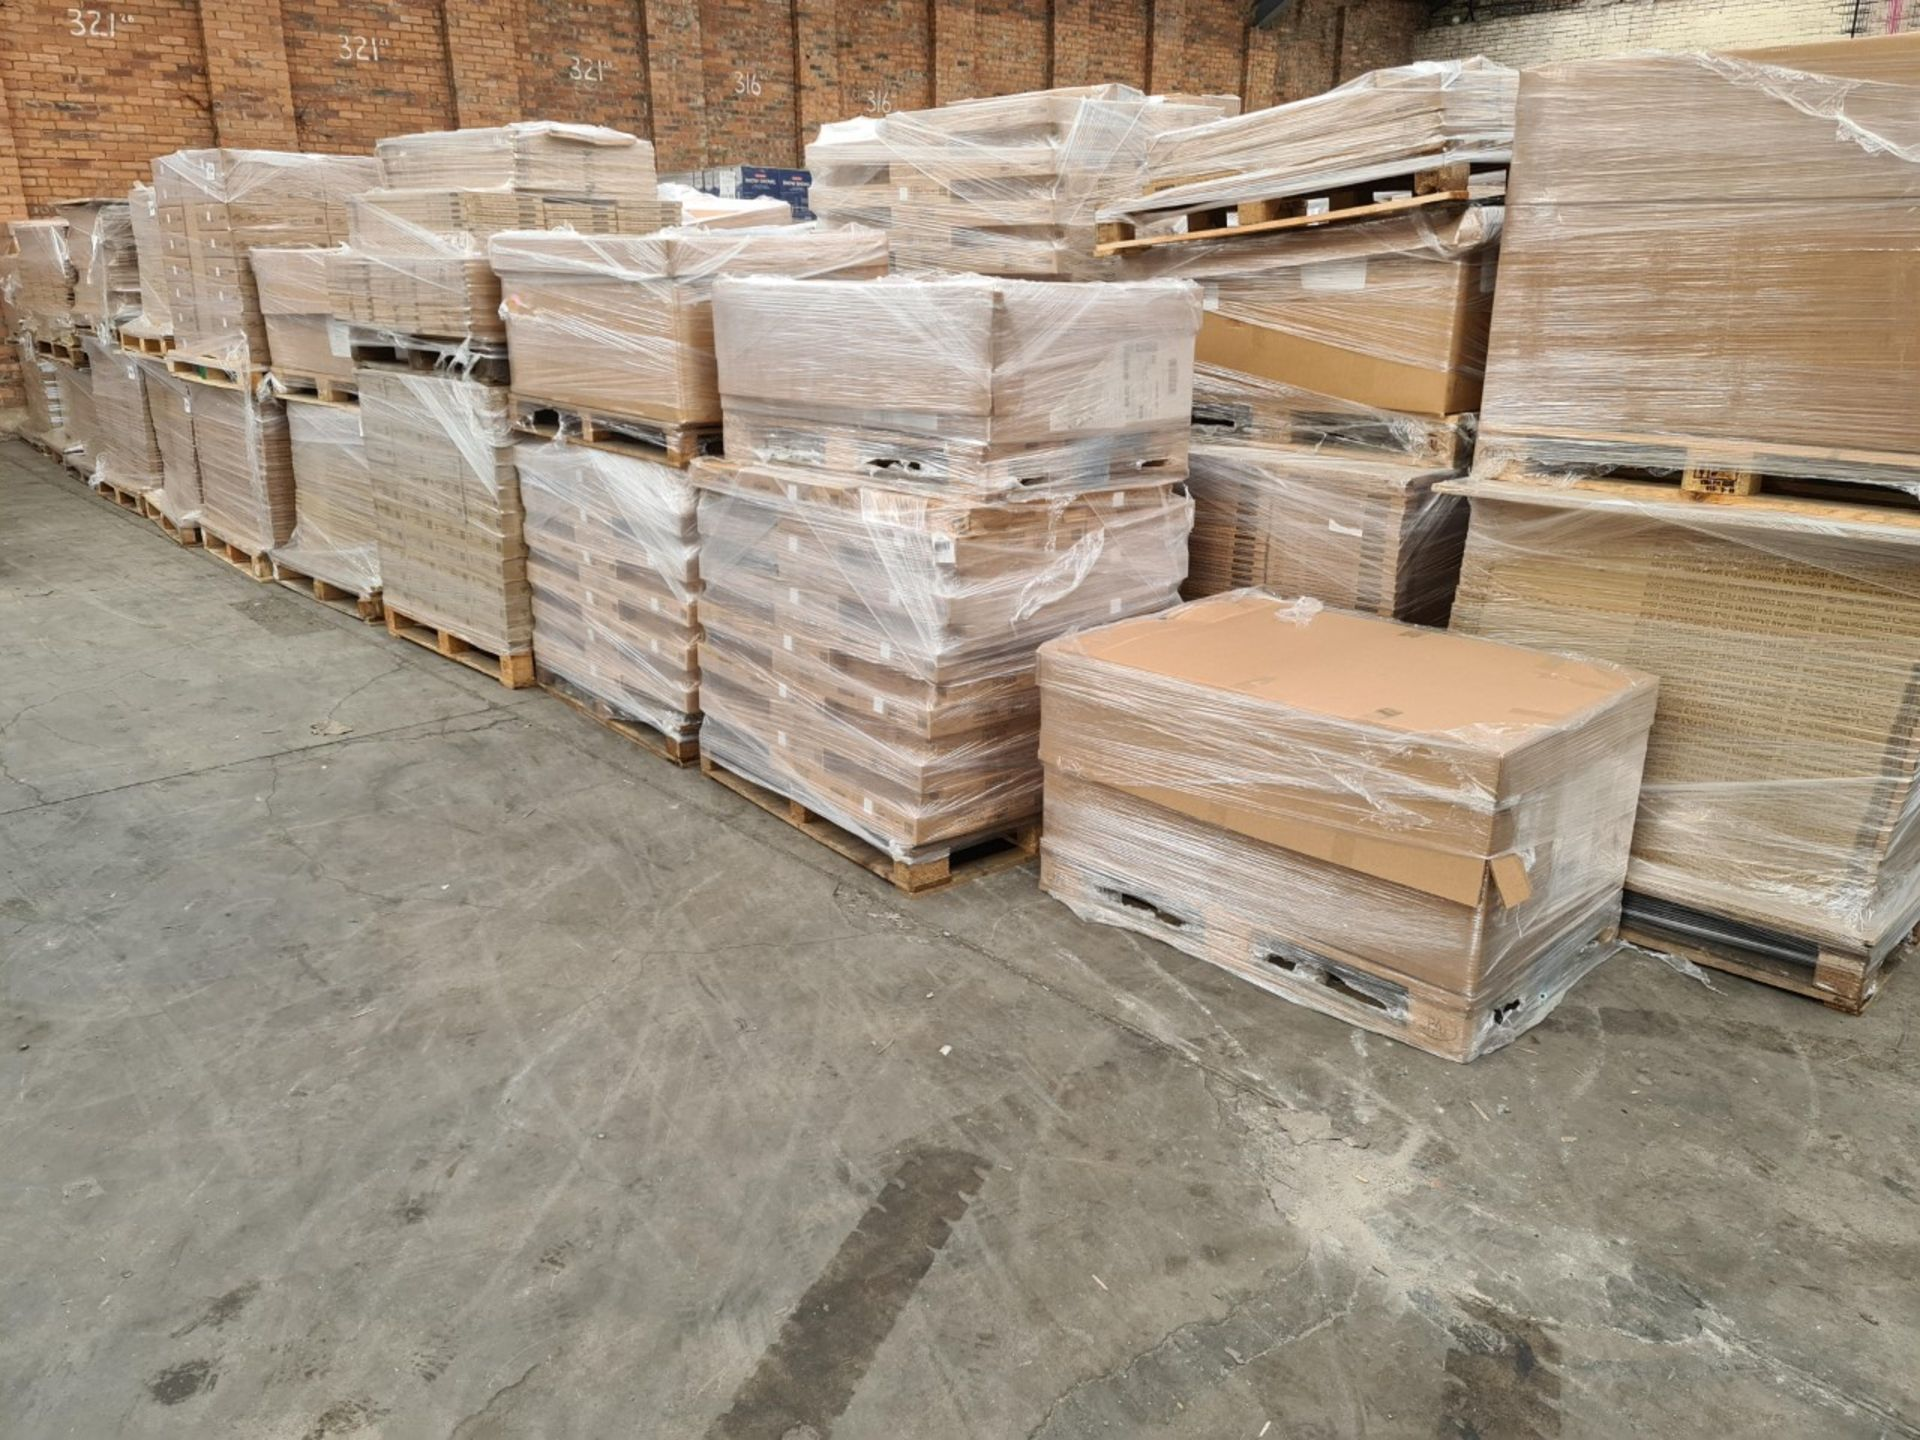 Kitchen Distributor Stock Liquidation-Circa 5,040 items of Brand-New Kitchen Goods - Sold As One Lot - Image 15 of 42